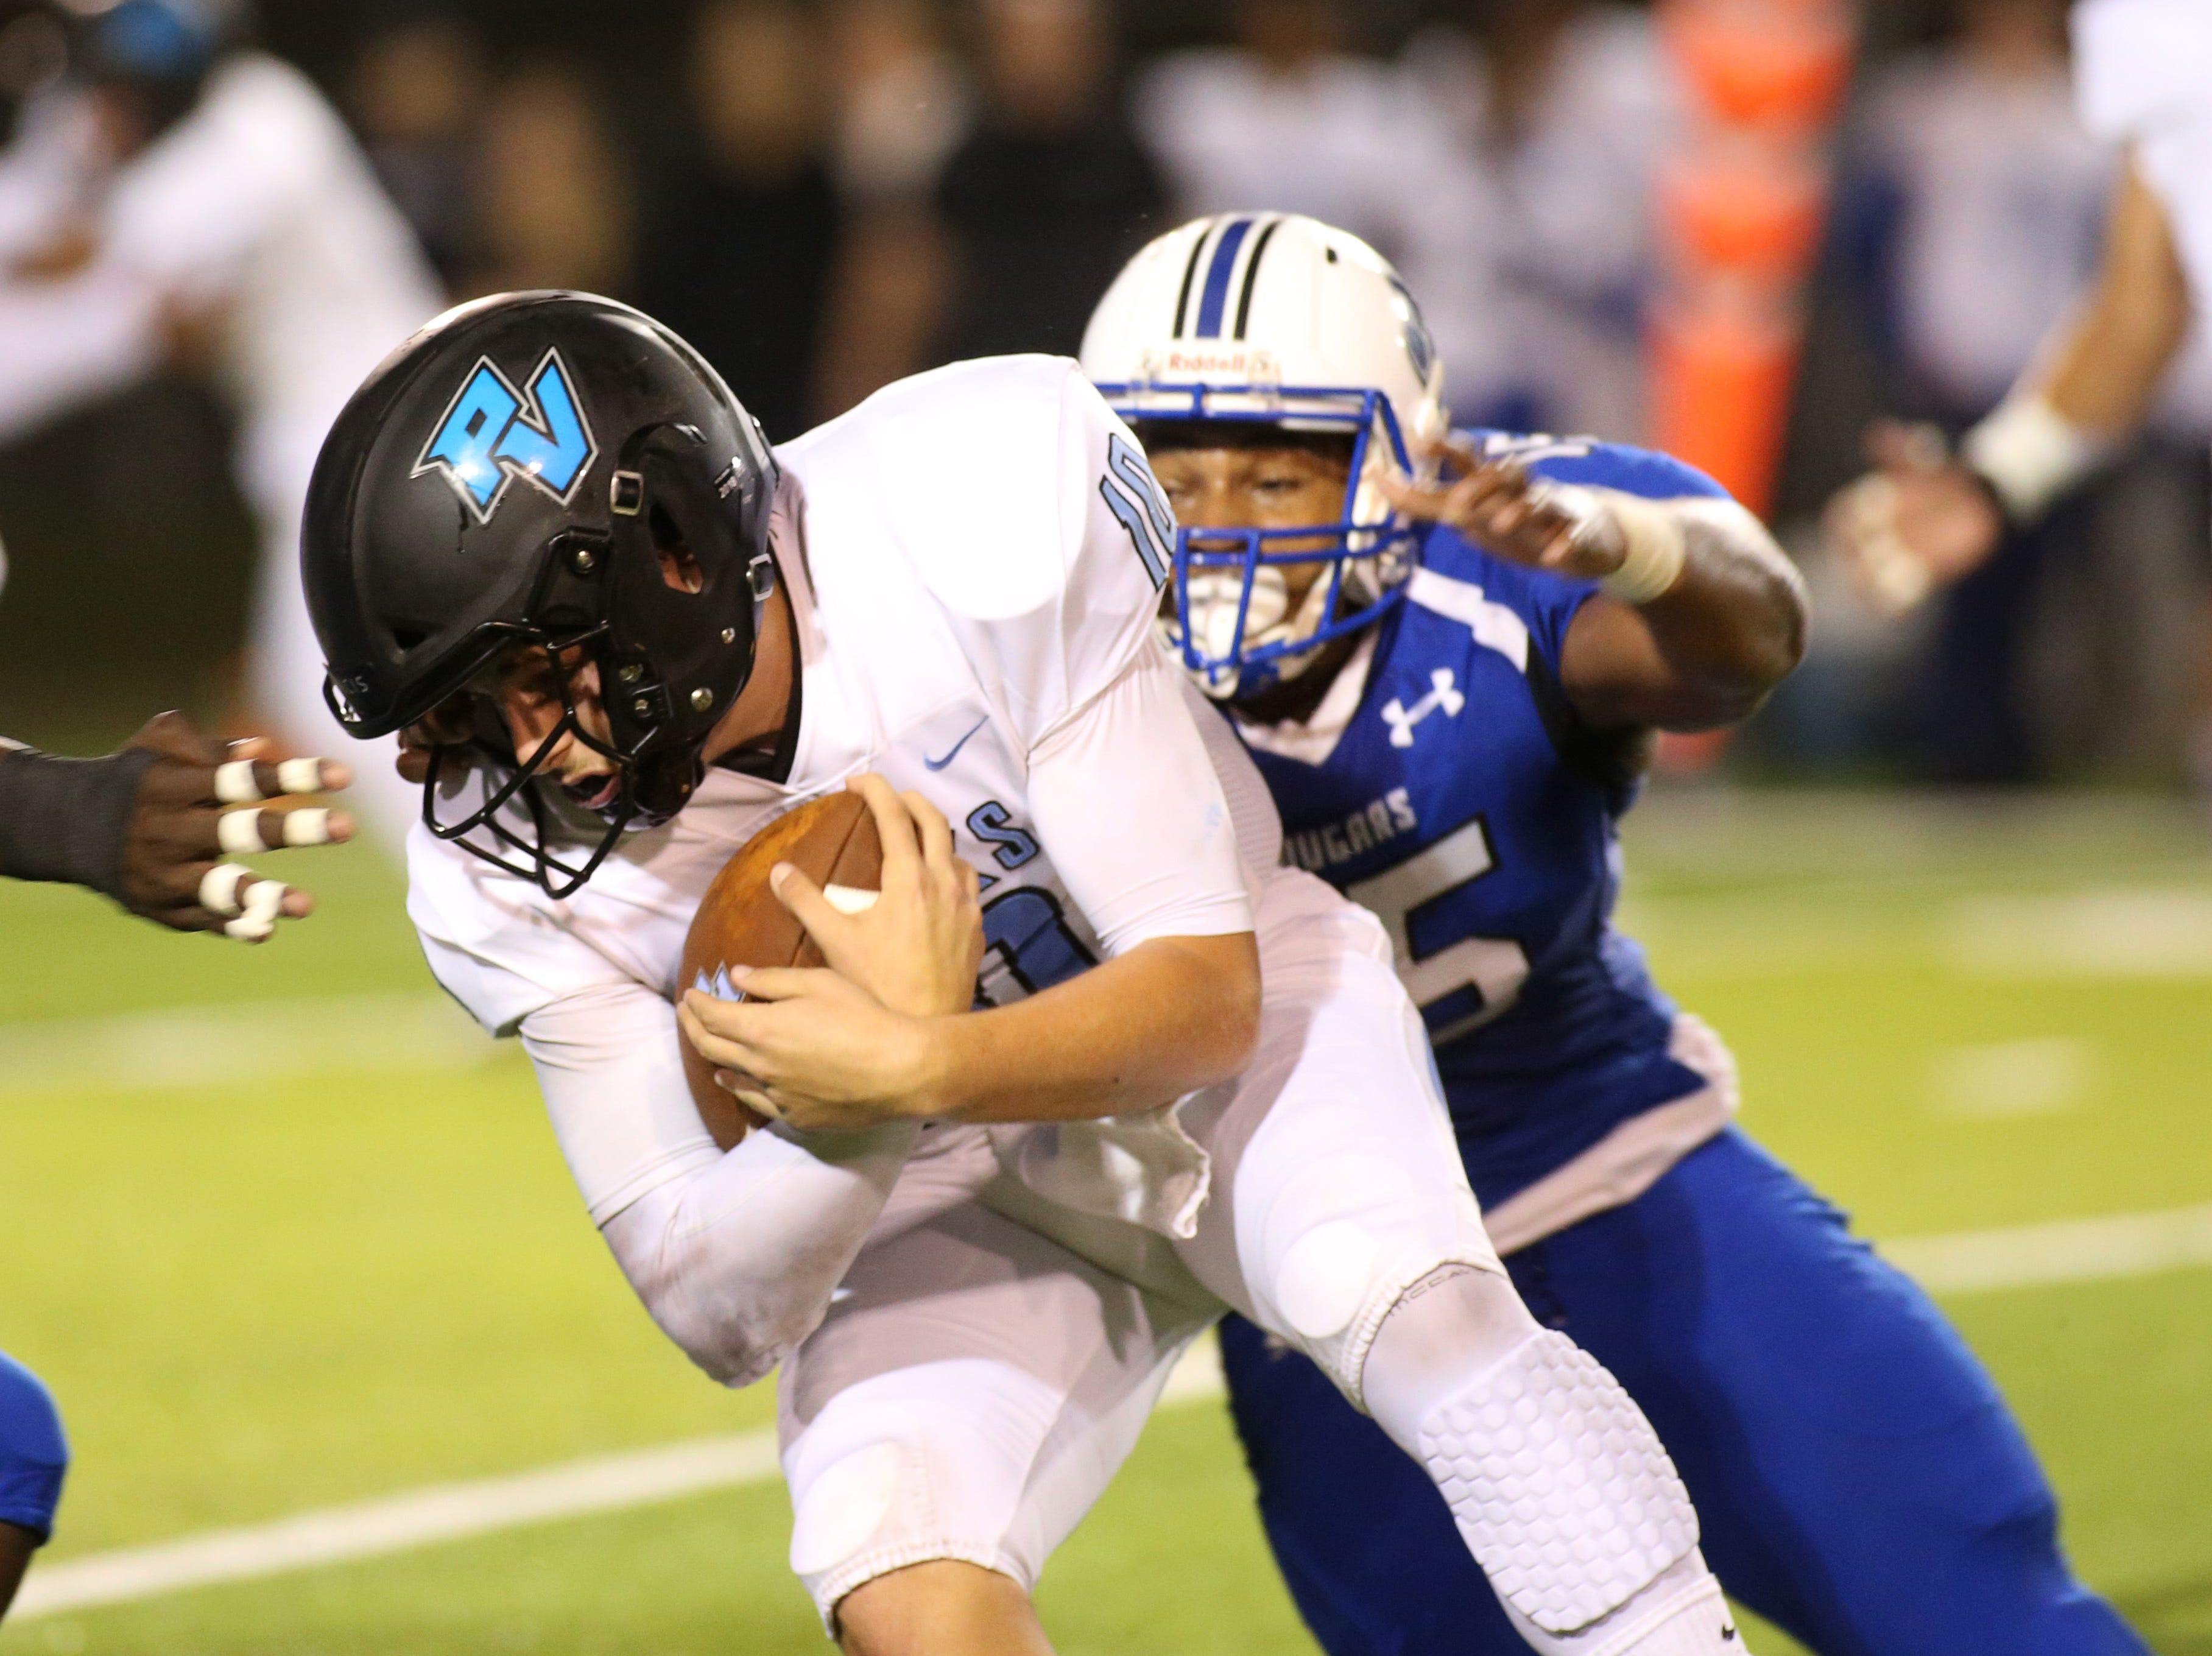 The Ponte Vedra Sharks face off against the Godby Cougars, in the Region 1-5A quarterfinal high school football playoff game at Gene Cox Stadium, Friday, Nov. 9, 2018.